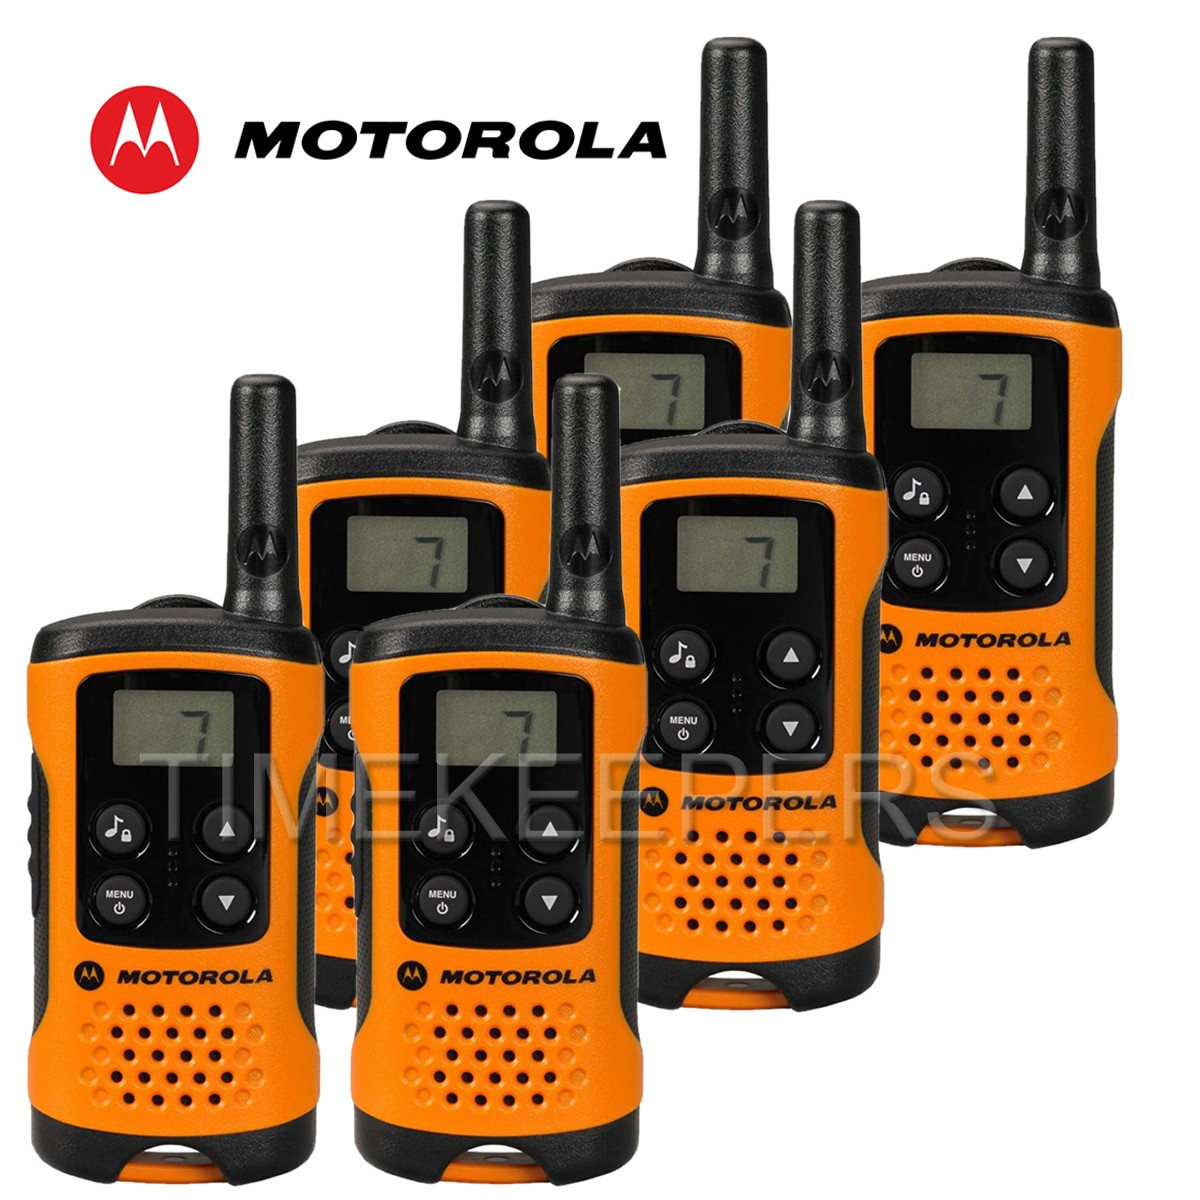 4km motorola tlkr t41 walkie talkie 2 two way pmr 446 compact radio set six orange. Black Bedroom Furniture Sets. Home Design Ideas